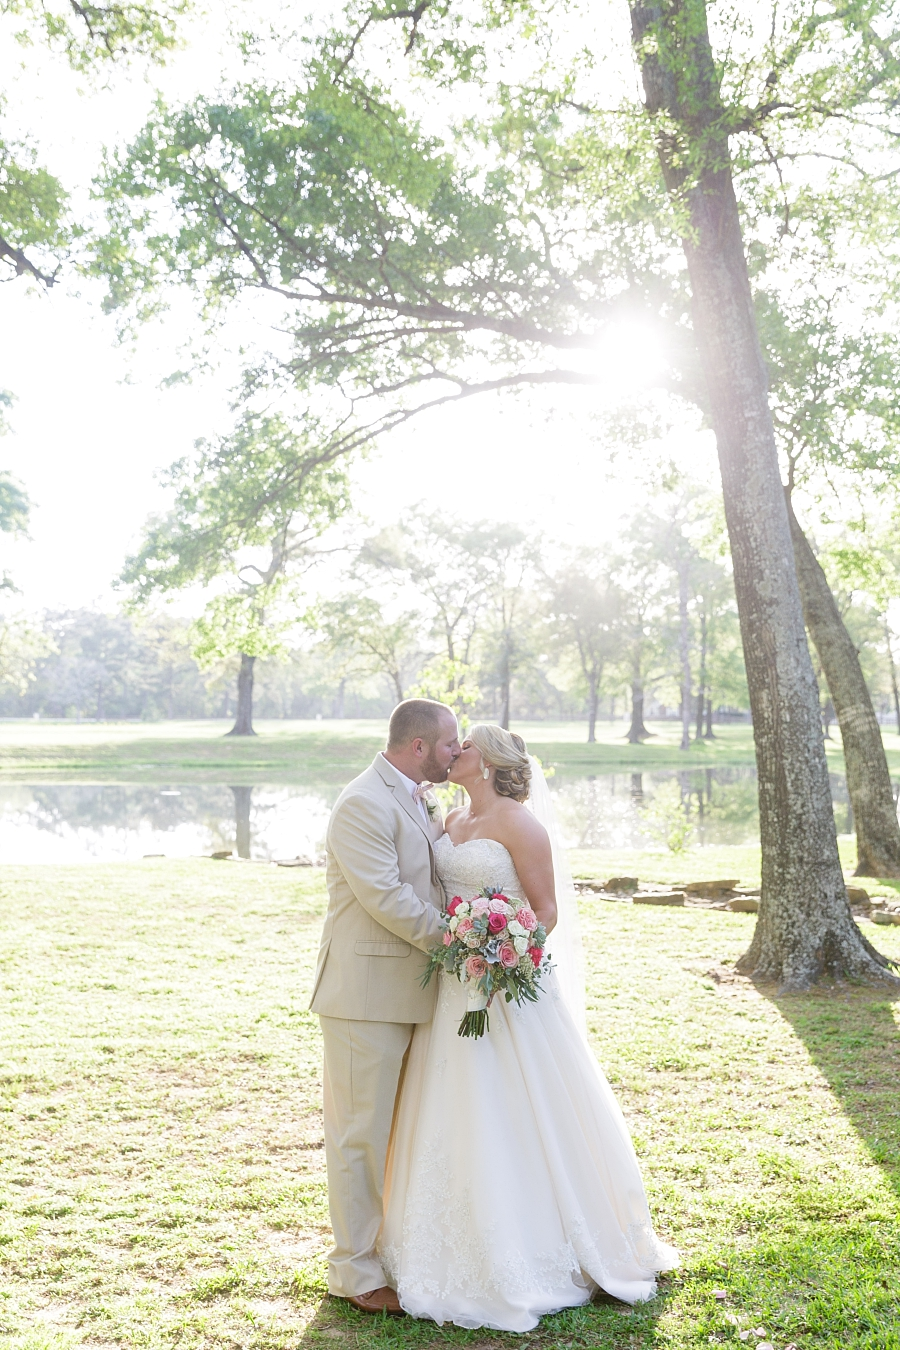 Stacy-Anderson-Photography-Balmorhea-Houston-Wedding-Photographer_0067.jpg